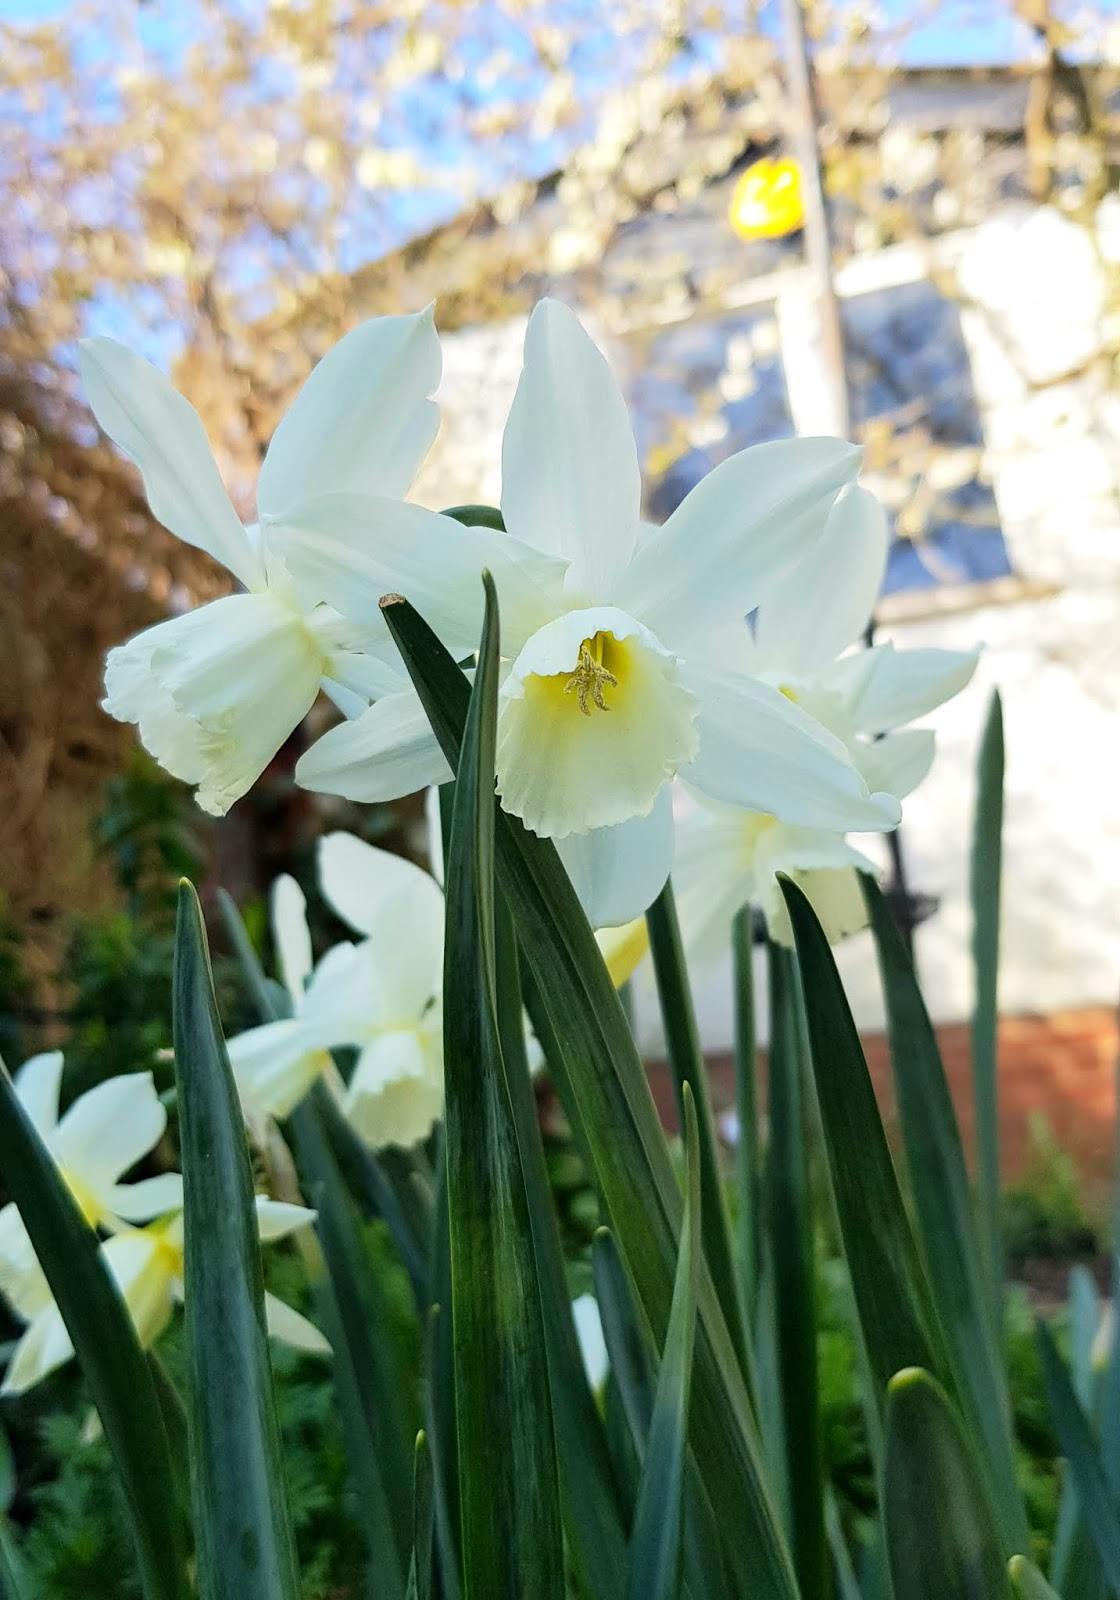 Narcissus Thalia flowering in London, March 2020